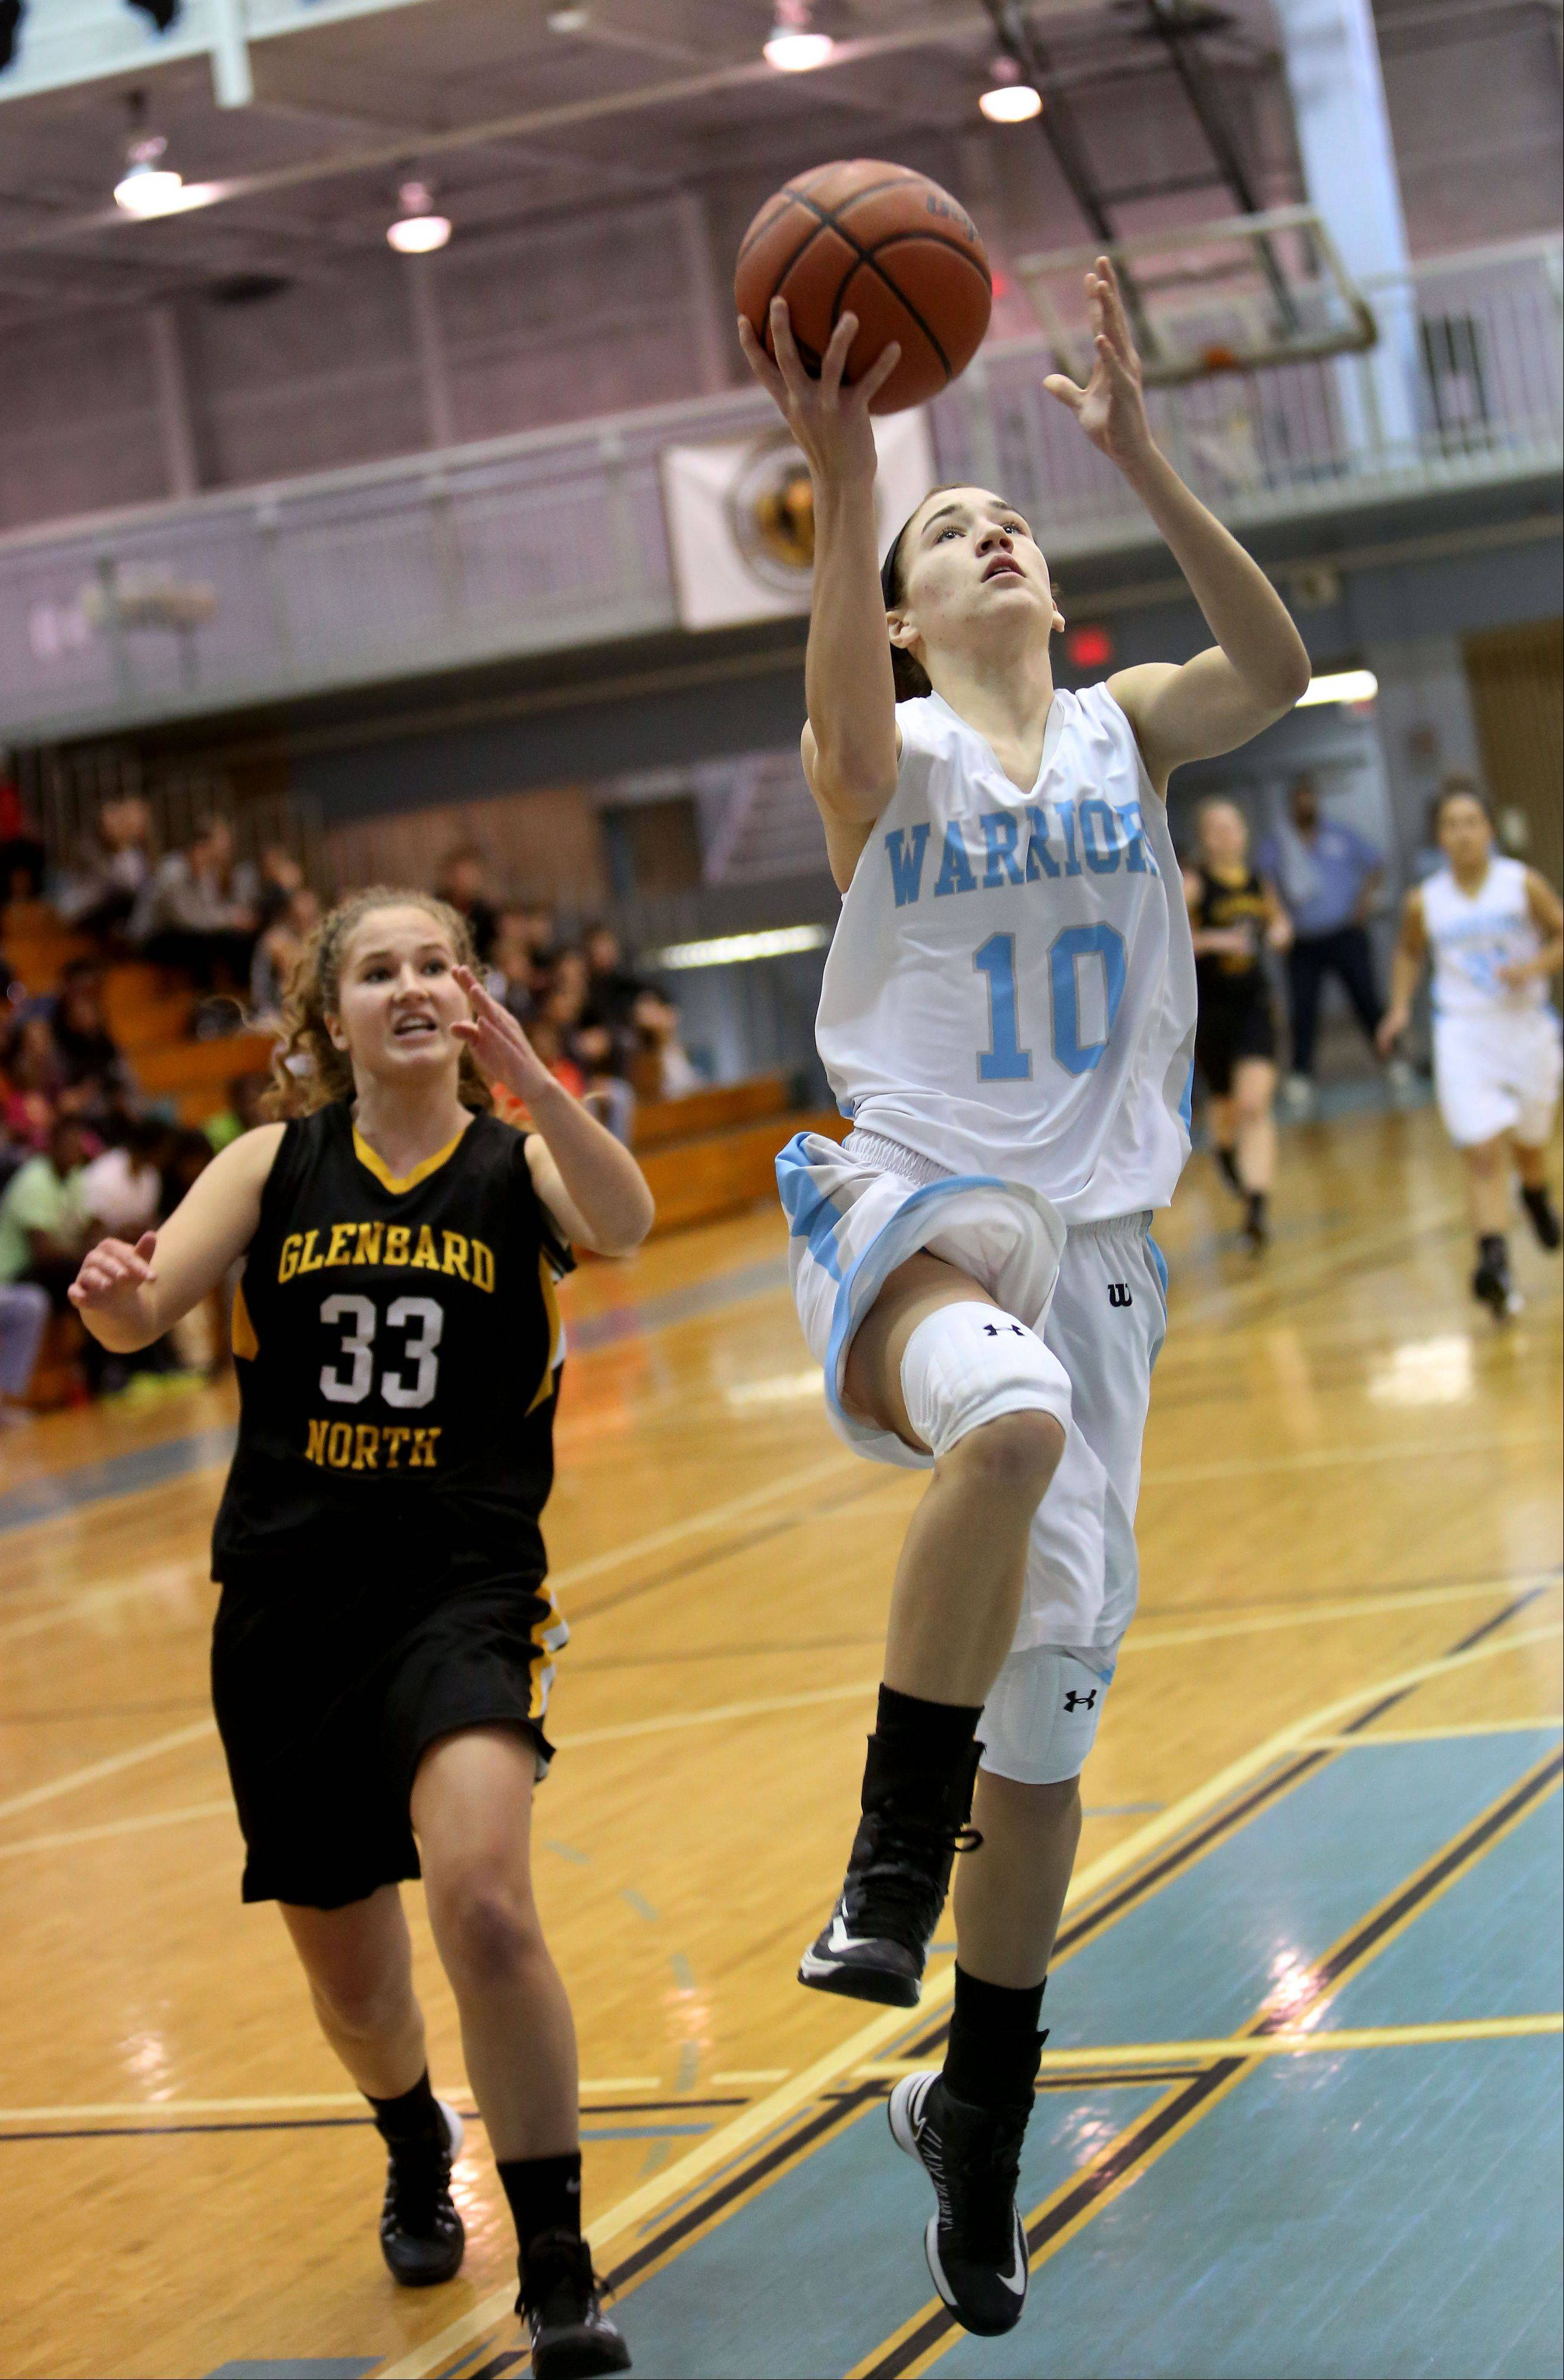 Willowbrook's Molly Krawczykowski goes past Arainna Cannard of Glenbard North for two points during girls basketball on Tuesday in Villa Park.